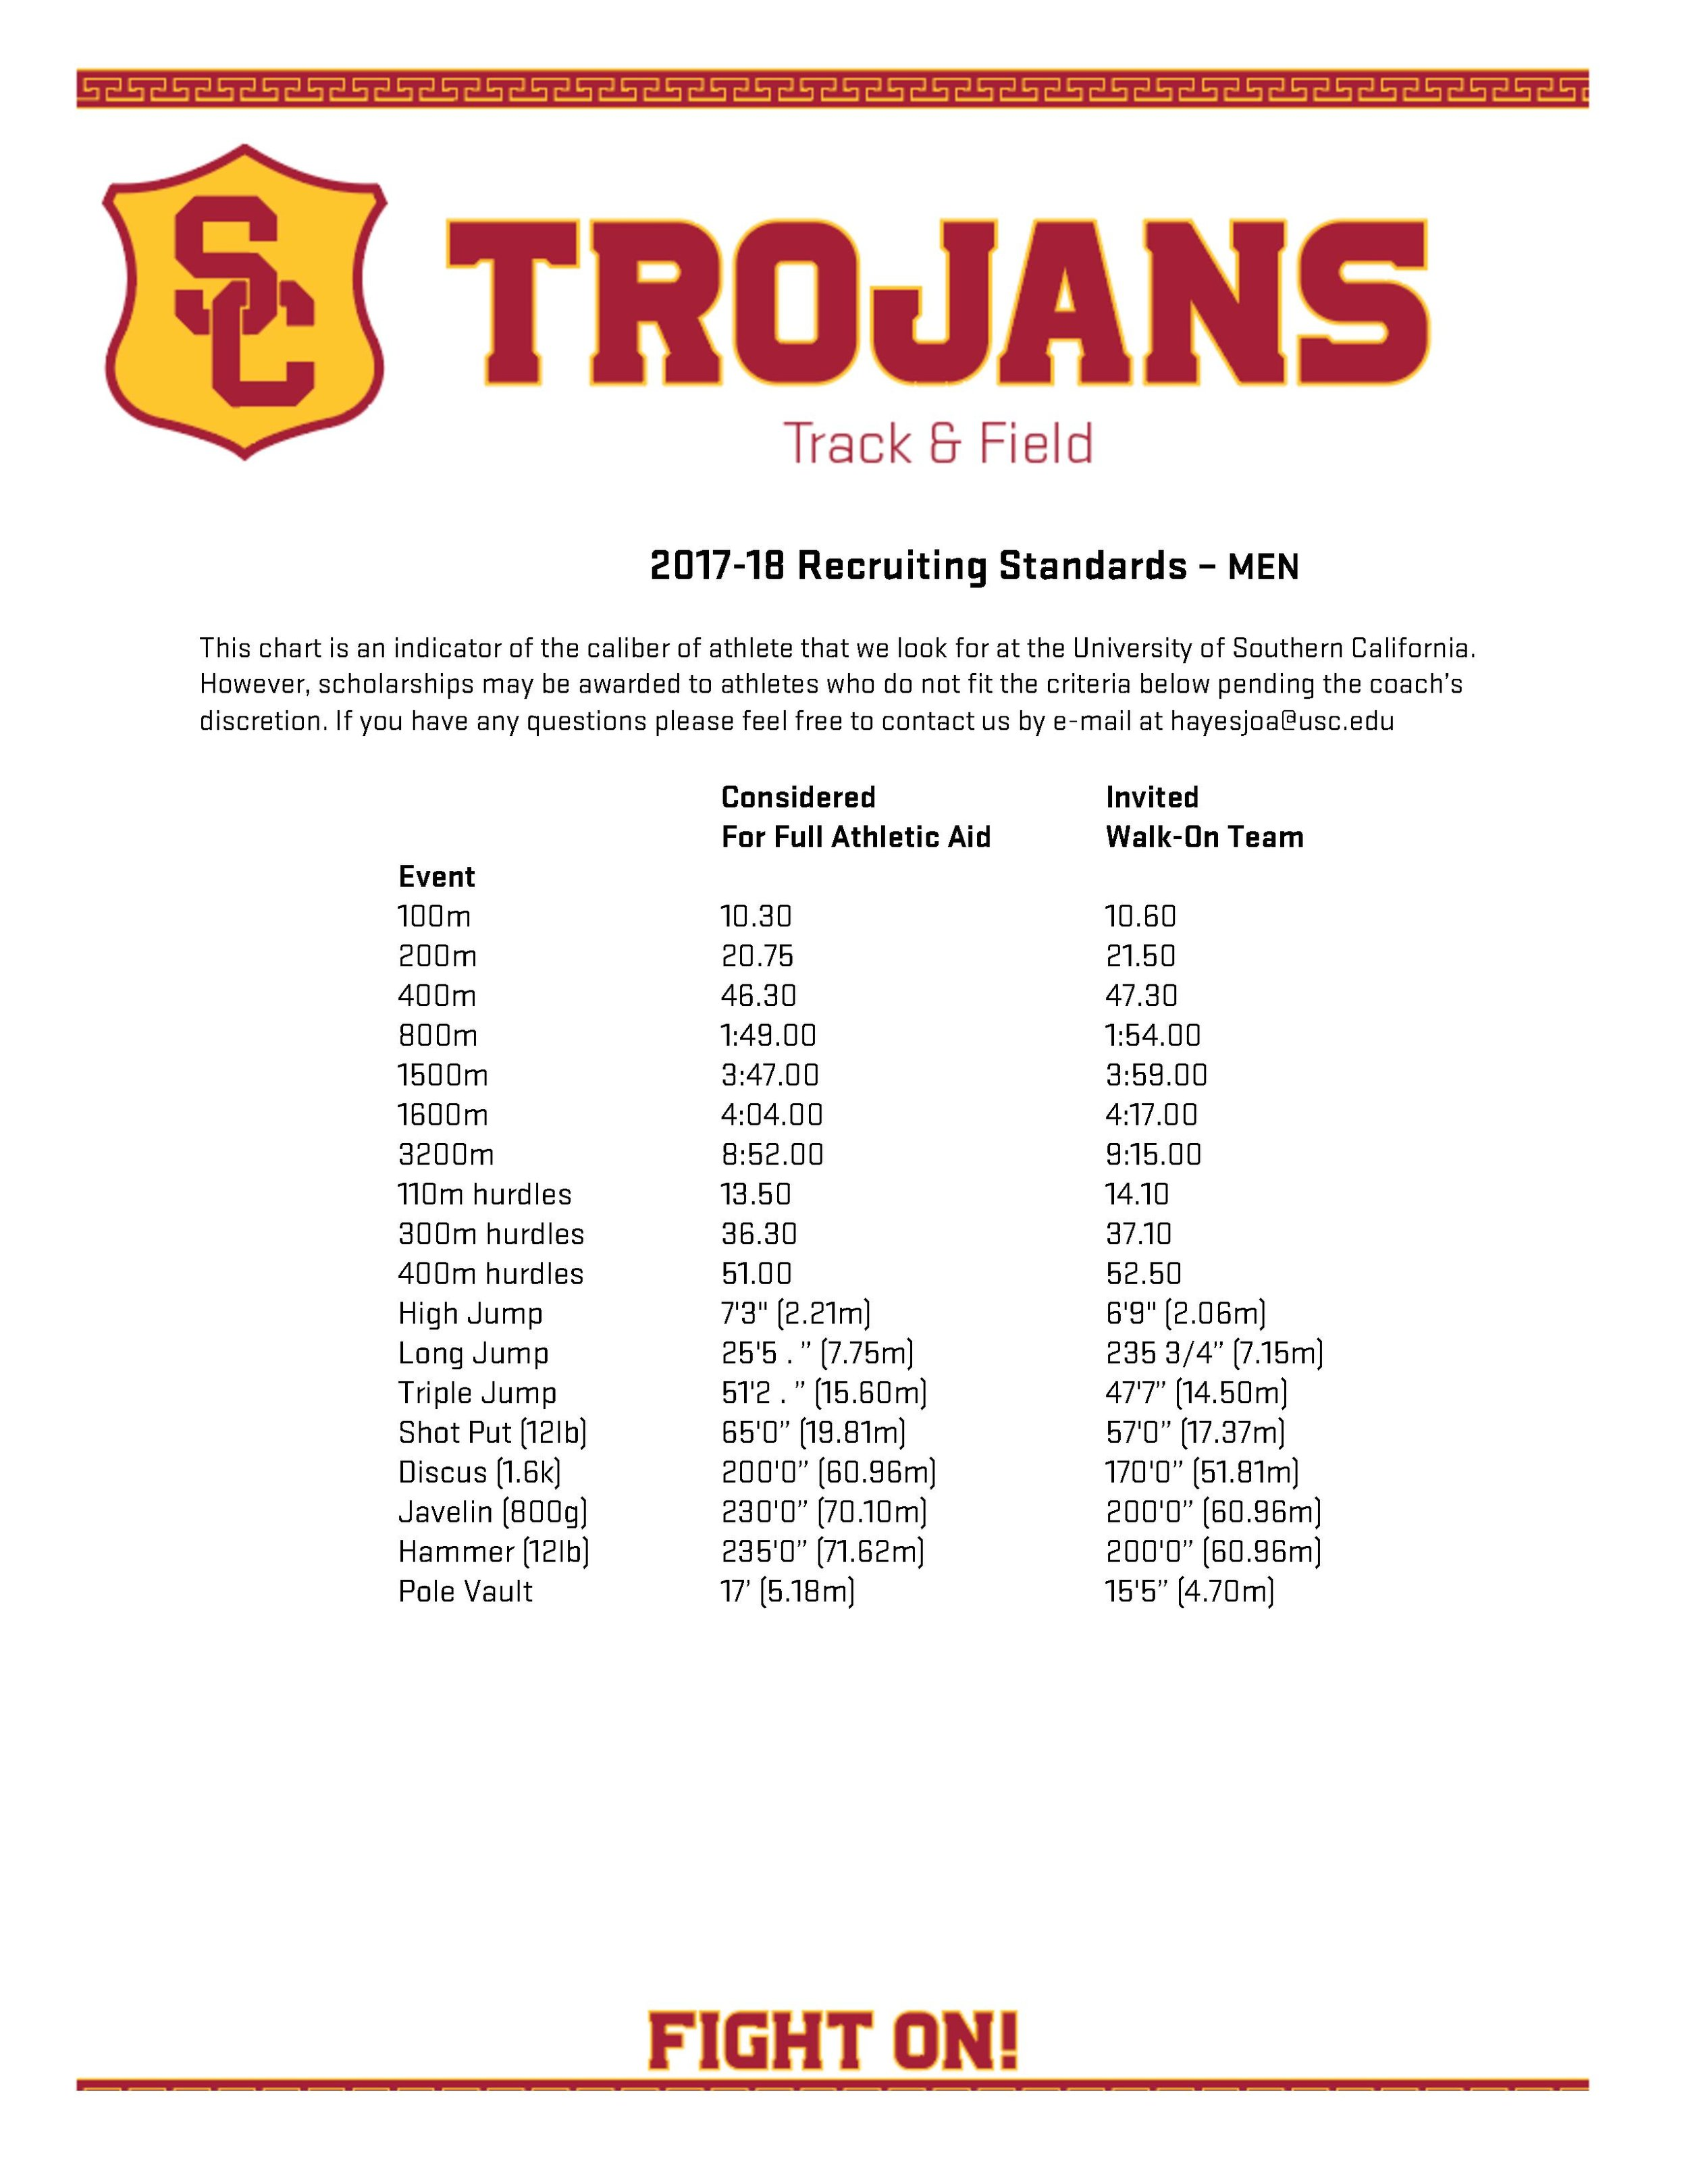 2017-18 Mens Recruiting Standards.jpg